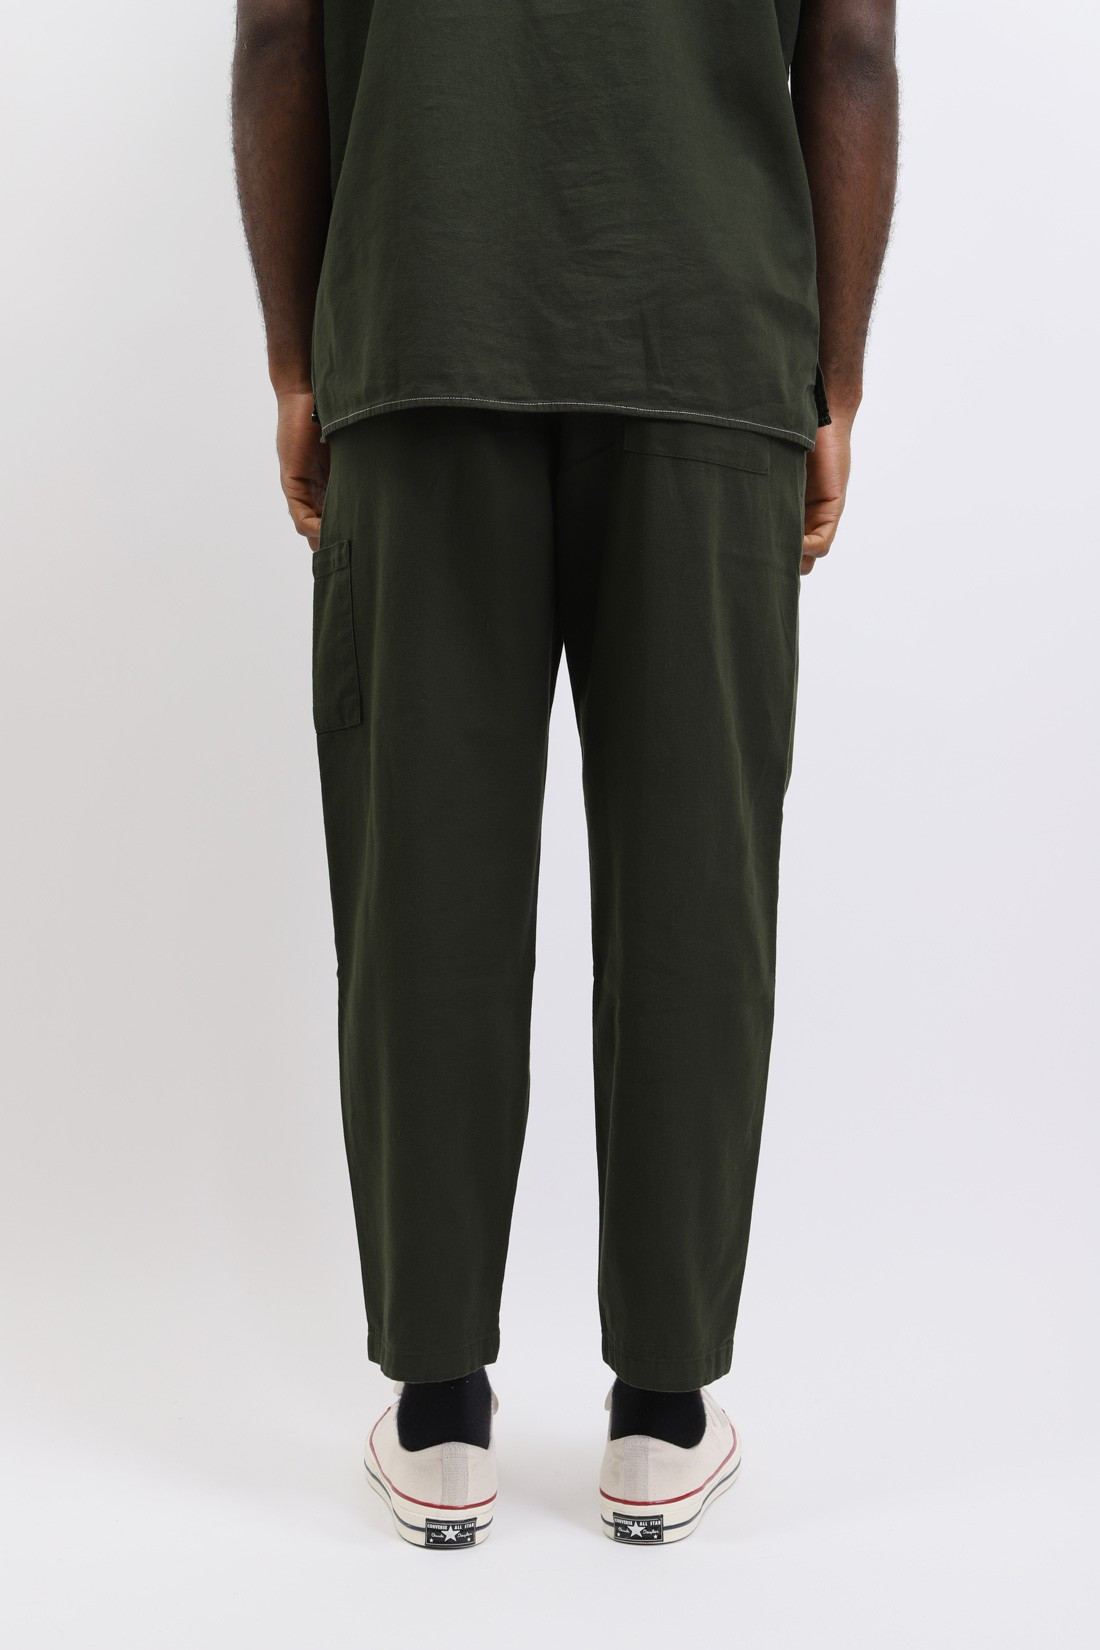 OLIVER SPENCER / Judo pant cotton Forest green